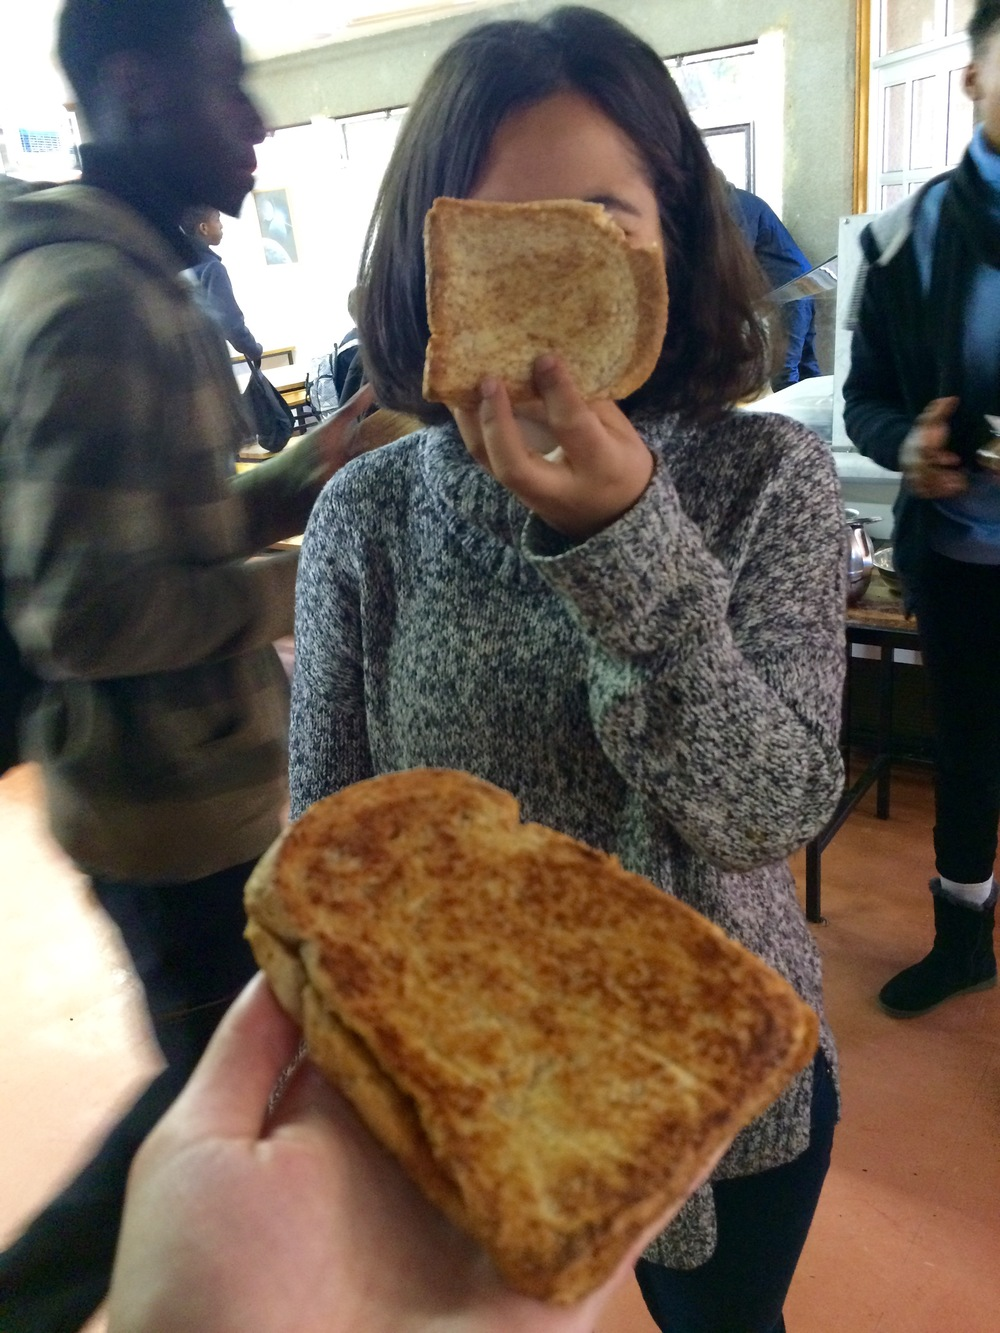 Heba, ft. our perfectly grilled 9am pb&j sandwiches! The blurry boy in green is one of the two students in our Cultural Literacy class—he'll be studying at Taft for his final year of high school this fall!